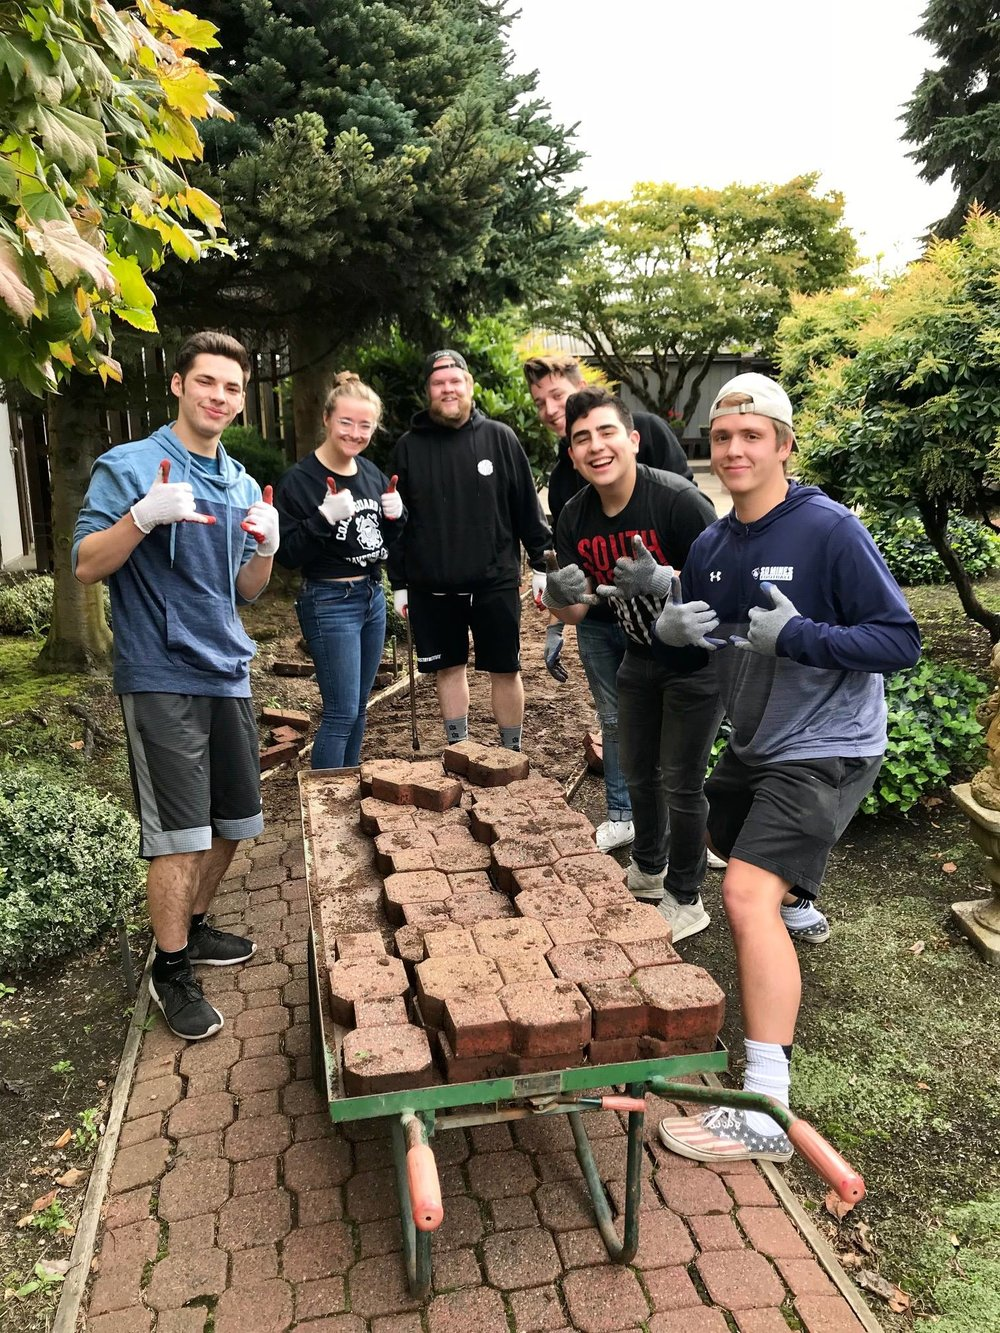 September - PUYALLUP FOURSQUARE MINISTRY INSTITUTEAn incredibly fun and enthusiastic group of college students from the Puyallup Foursquare Ministry Institute brought their muscles to Step By Step and checked off an impressive To-Do list, in less than 2 hours!They tackled the first demolition project of our remodel (pulling up patio pavers and stacking them neatly for re-use), set up all the chairs and tables for an event the next day, moved office furniture and greenhouse supplies, and reorganized storage spaces. They also assembled over 1,000 utensil sets for our annual family Christmas event that we will be hosting for our moms and their families in December.We were so blessed by the beautiful hearts of these volunteers, as they smiled and joked together, while working so hard. Thank you for your continued support of Step By Step and the mothers and babies we serve. We hope you will come back again very soon!